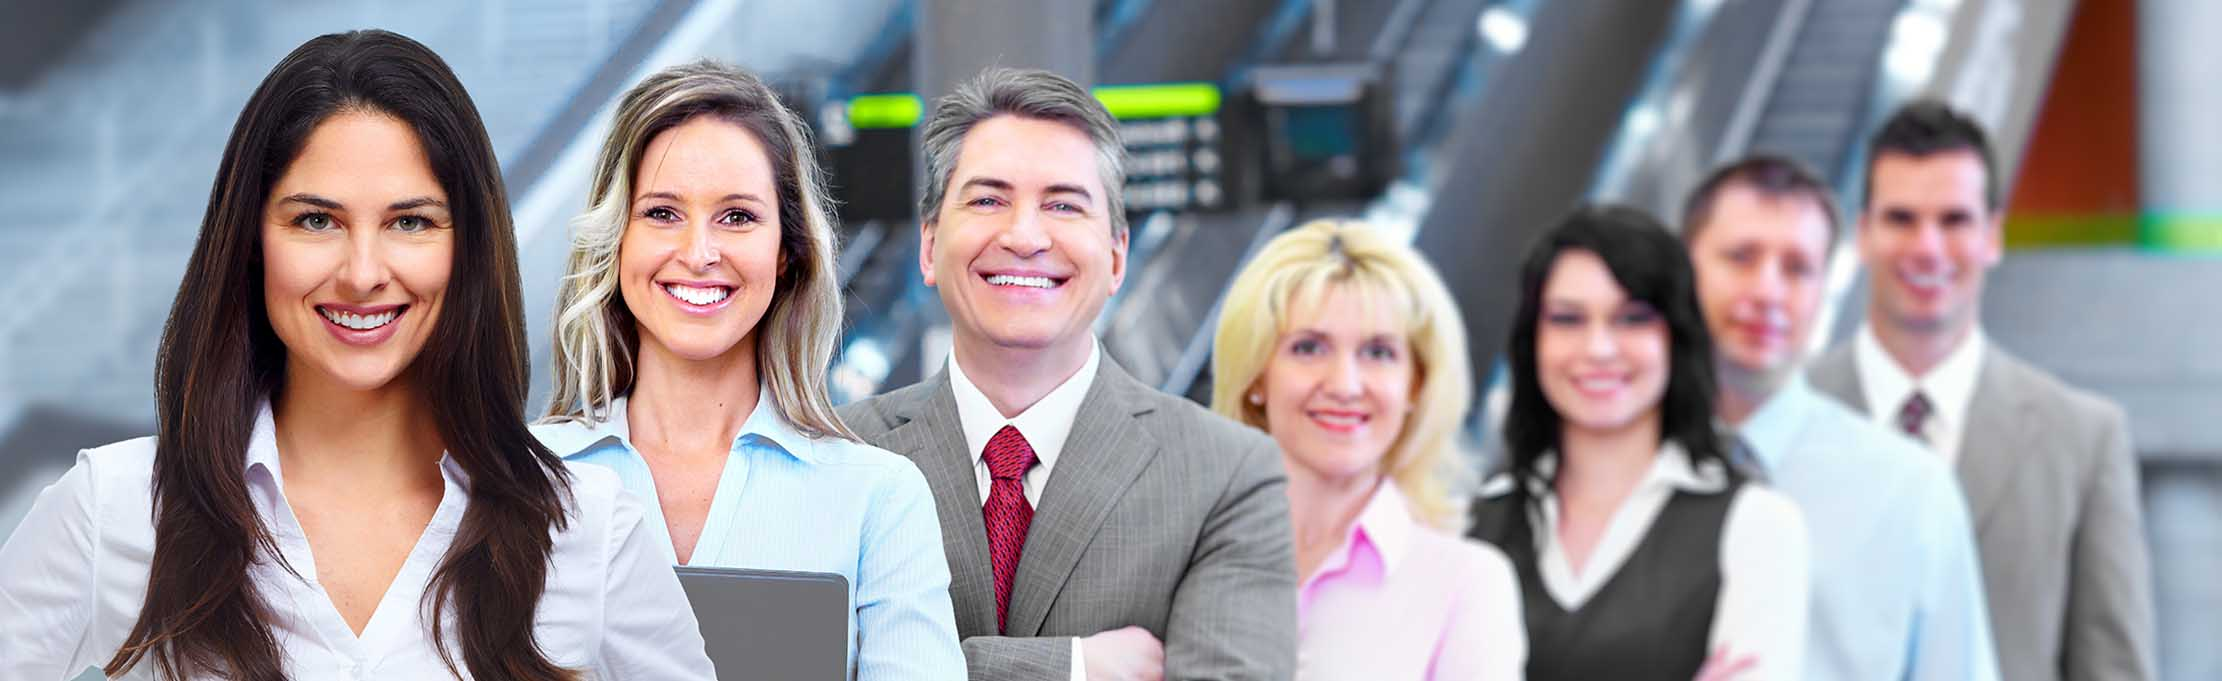 Group of business people in a modern office center